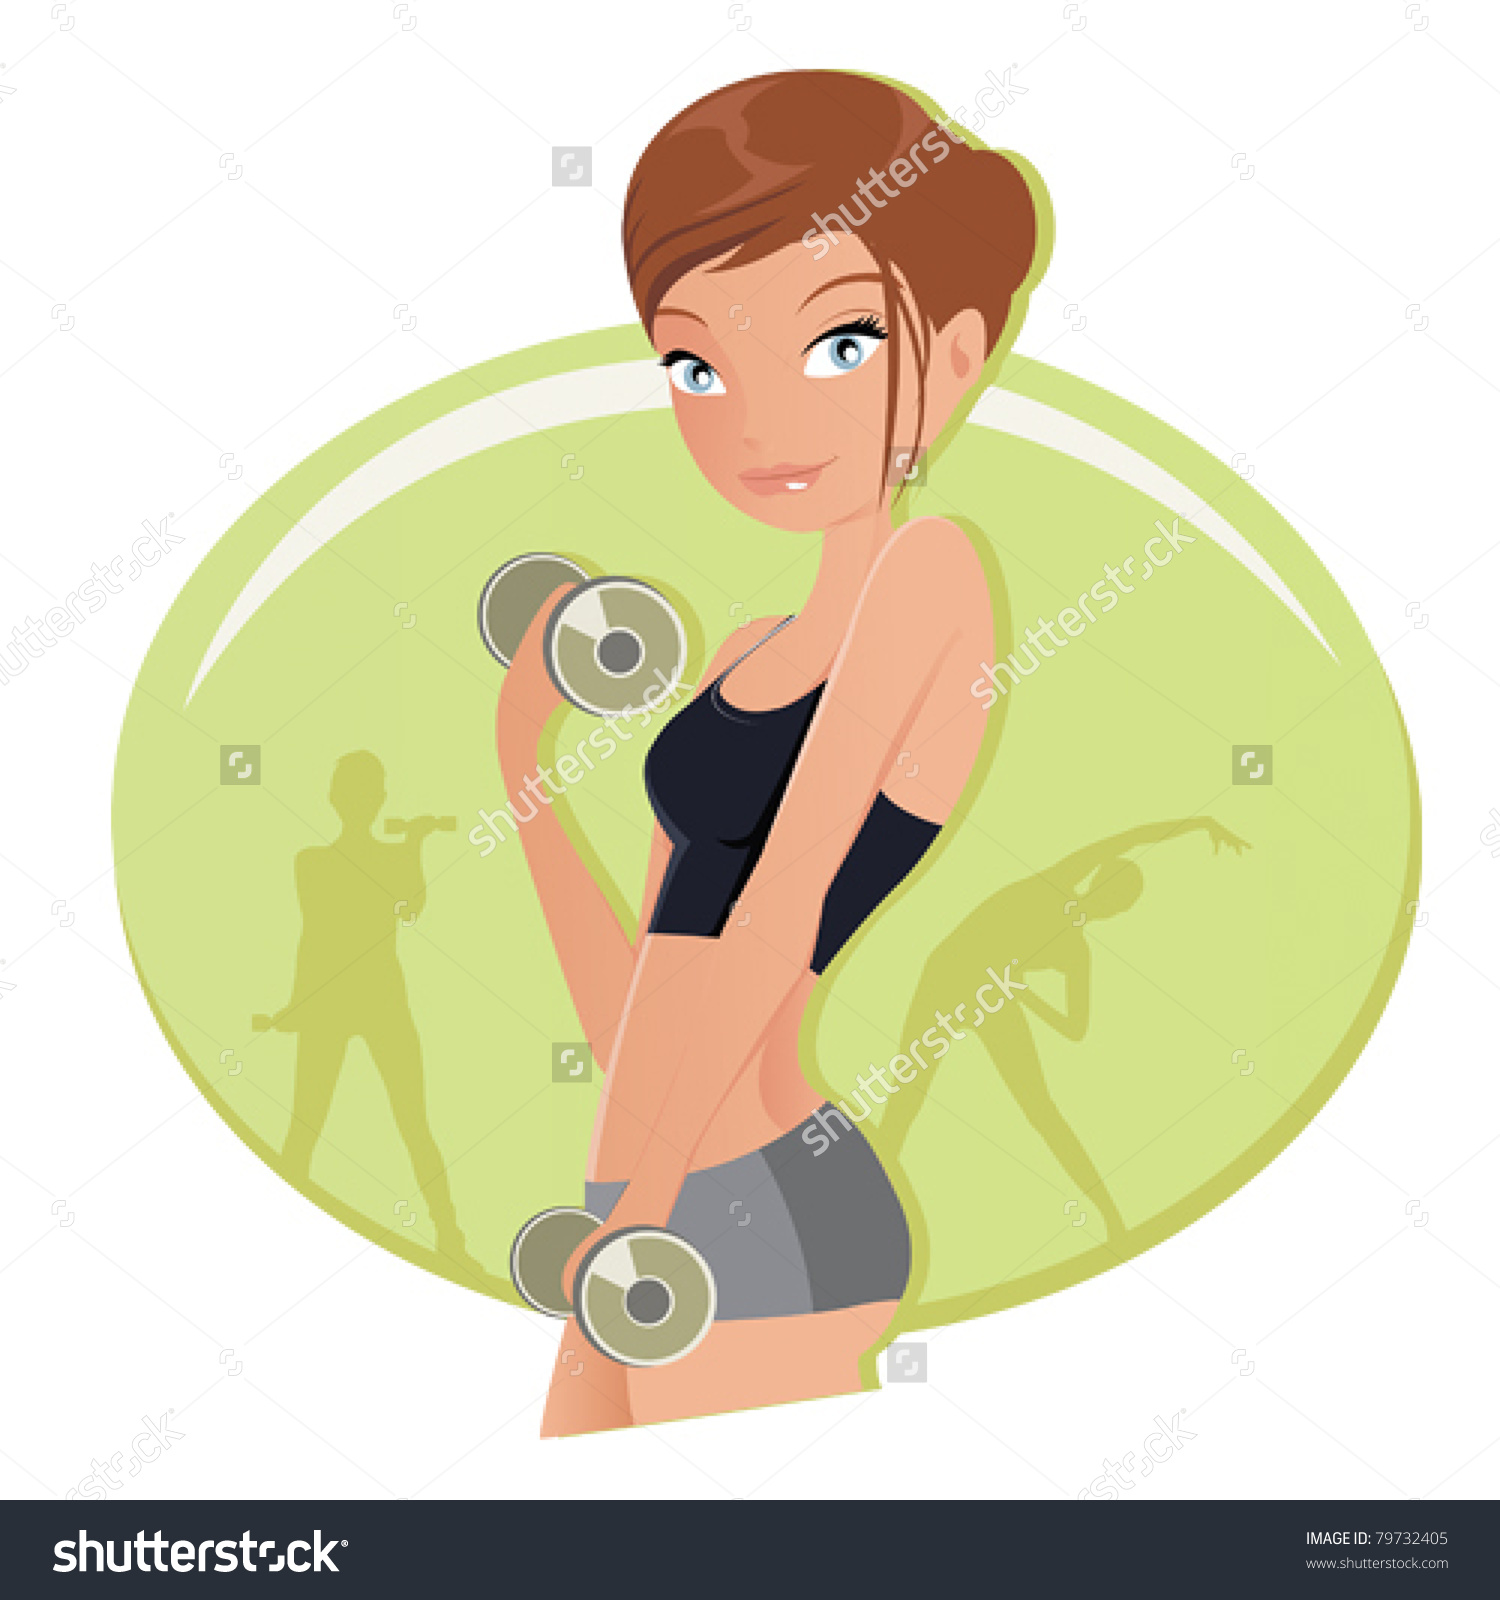 Illustration Fitness Woman Working Out Dumbbells Stock Vector.